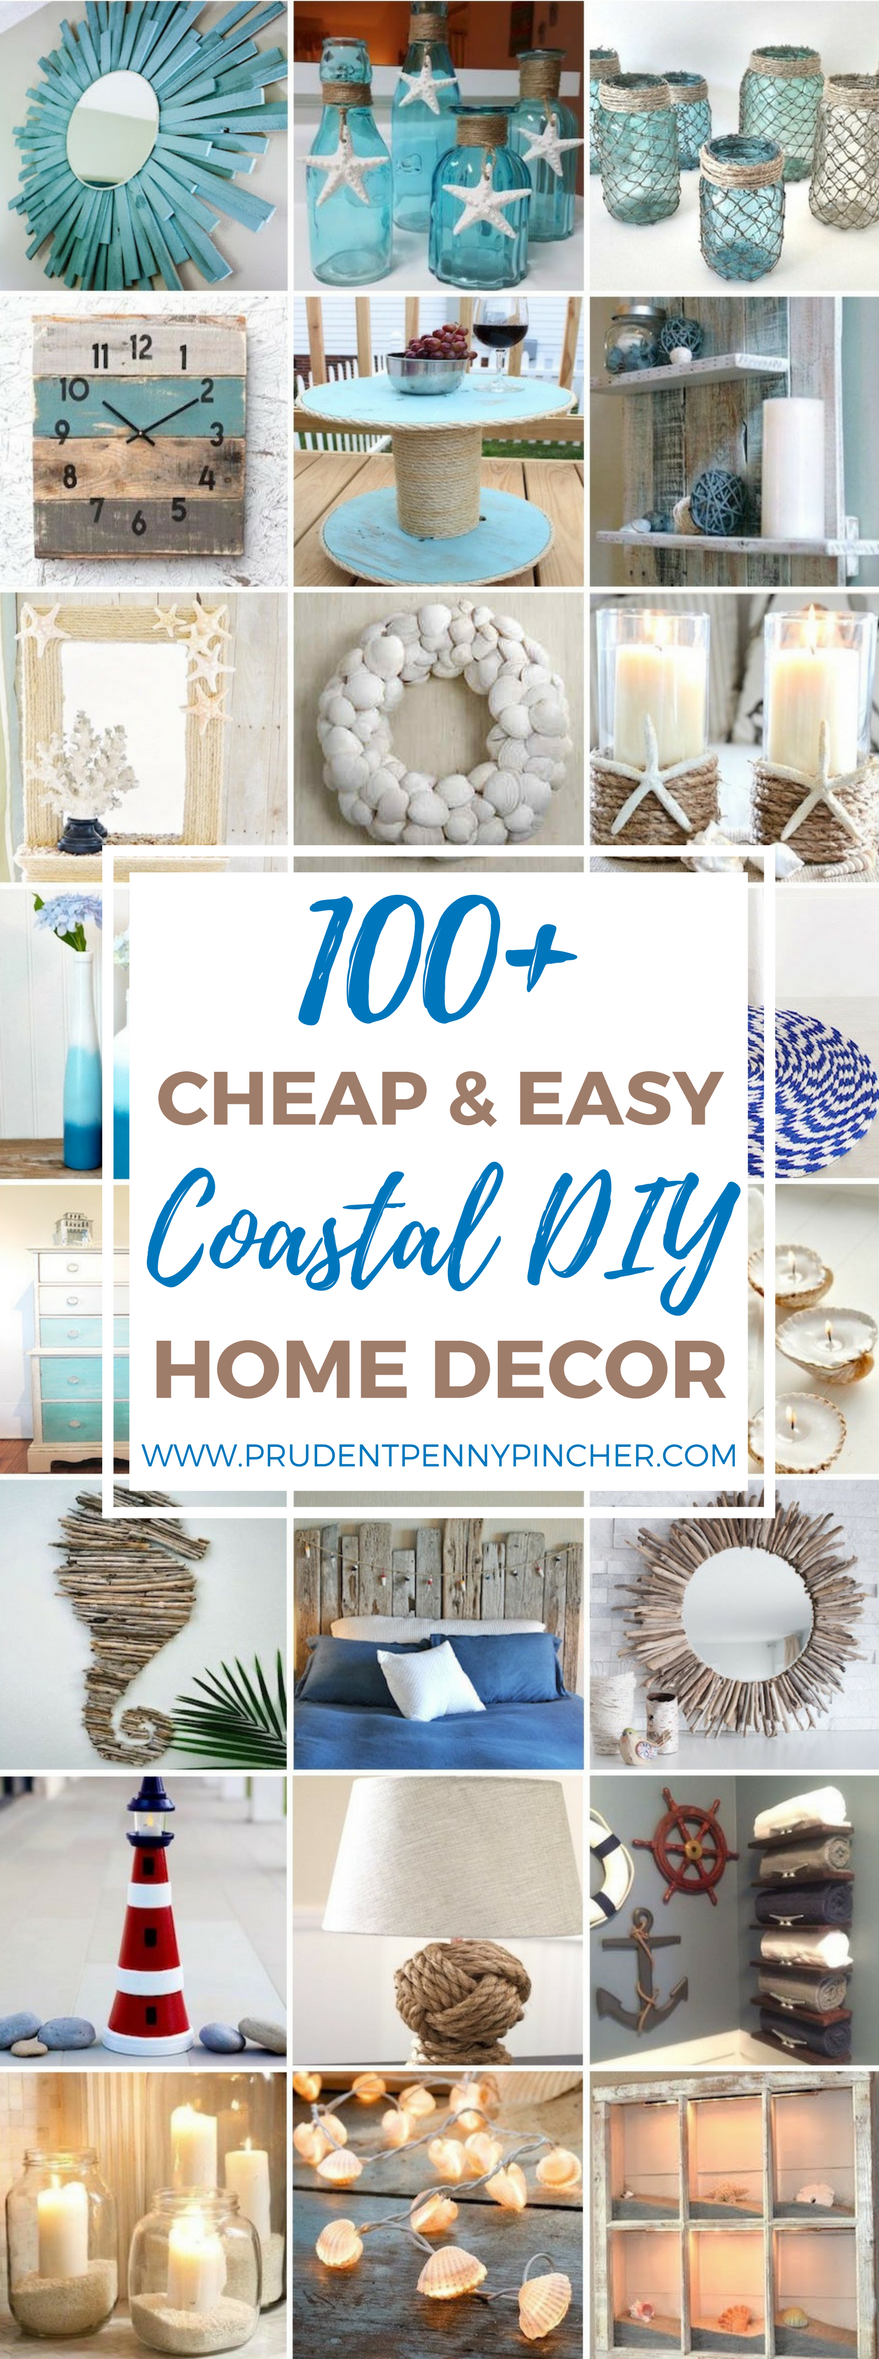 100 Cheap and Easy Coastal DIY Home Decor Ideas | Pinterest ...